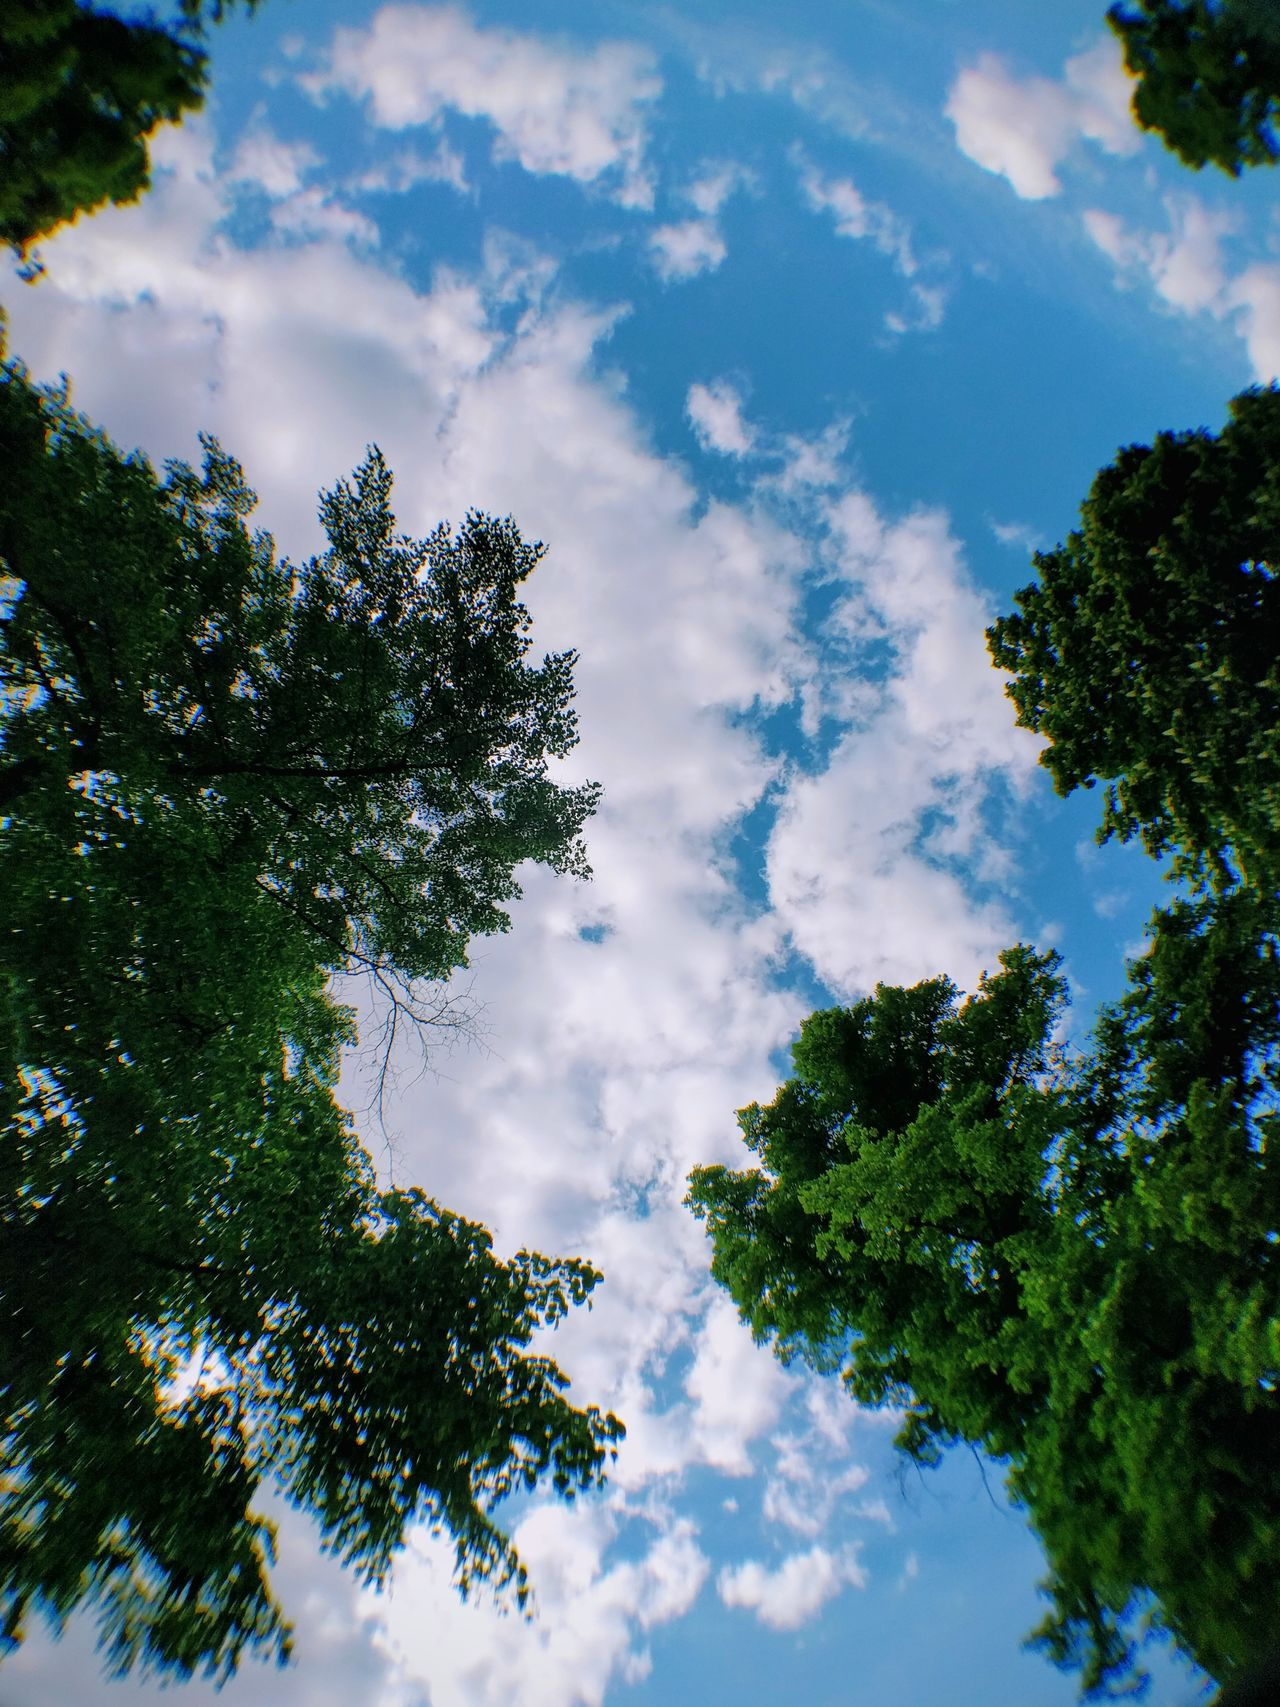 Tree Sky Cloud - Sky Low Angle View Nature Outdoors Forest Day Blue No People Beauty In Nature Branch Summer Leisure Activity